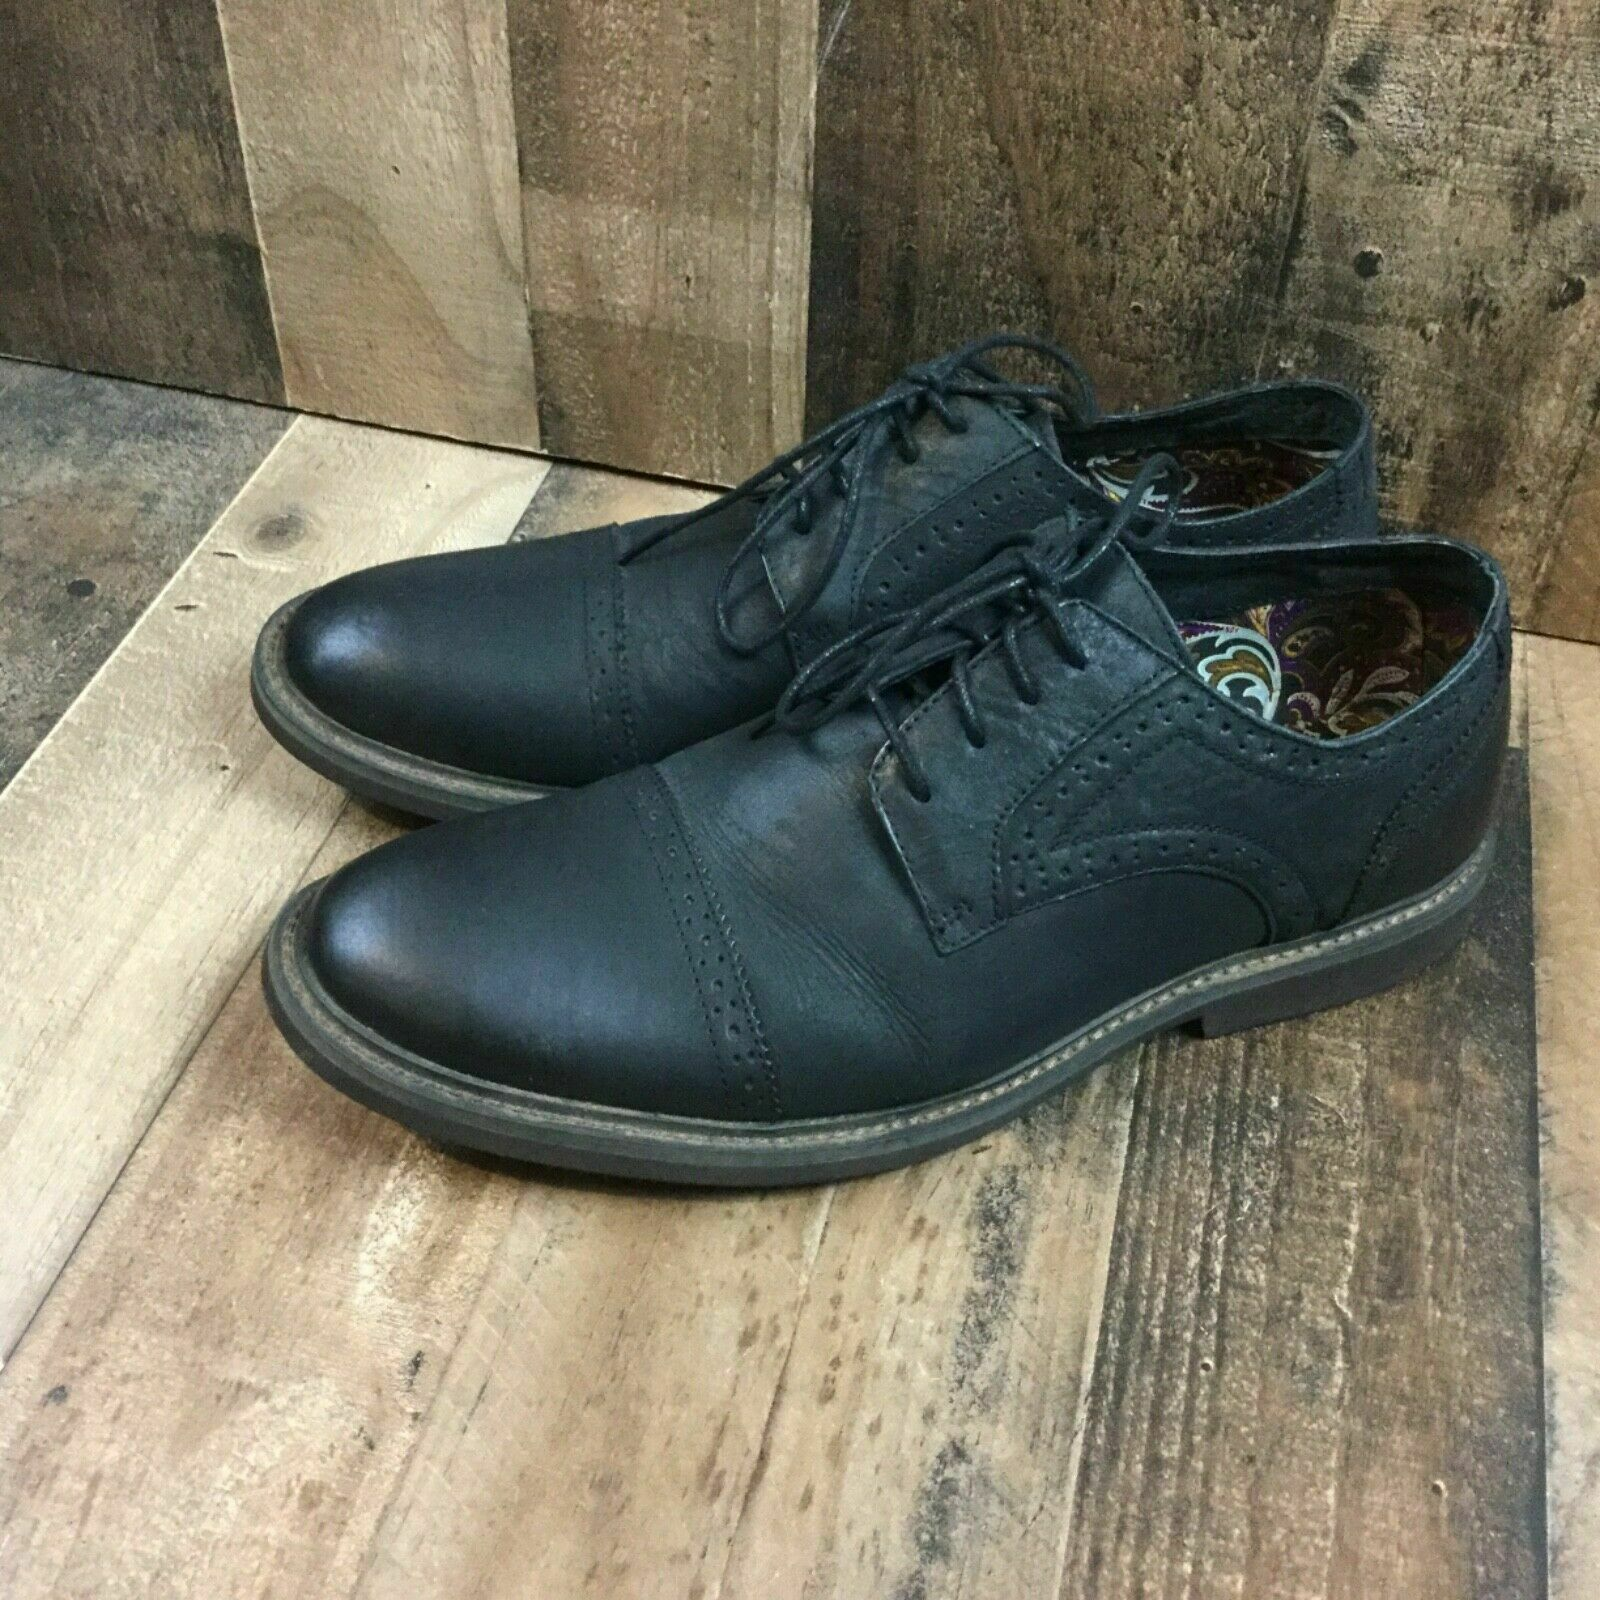 J75 by jump mens 12 black leather cap top perforated boston oxfords casual dress